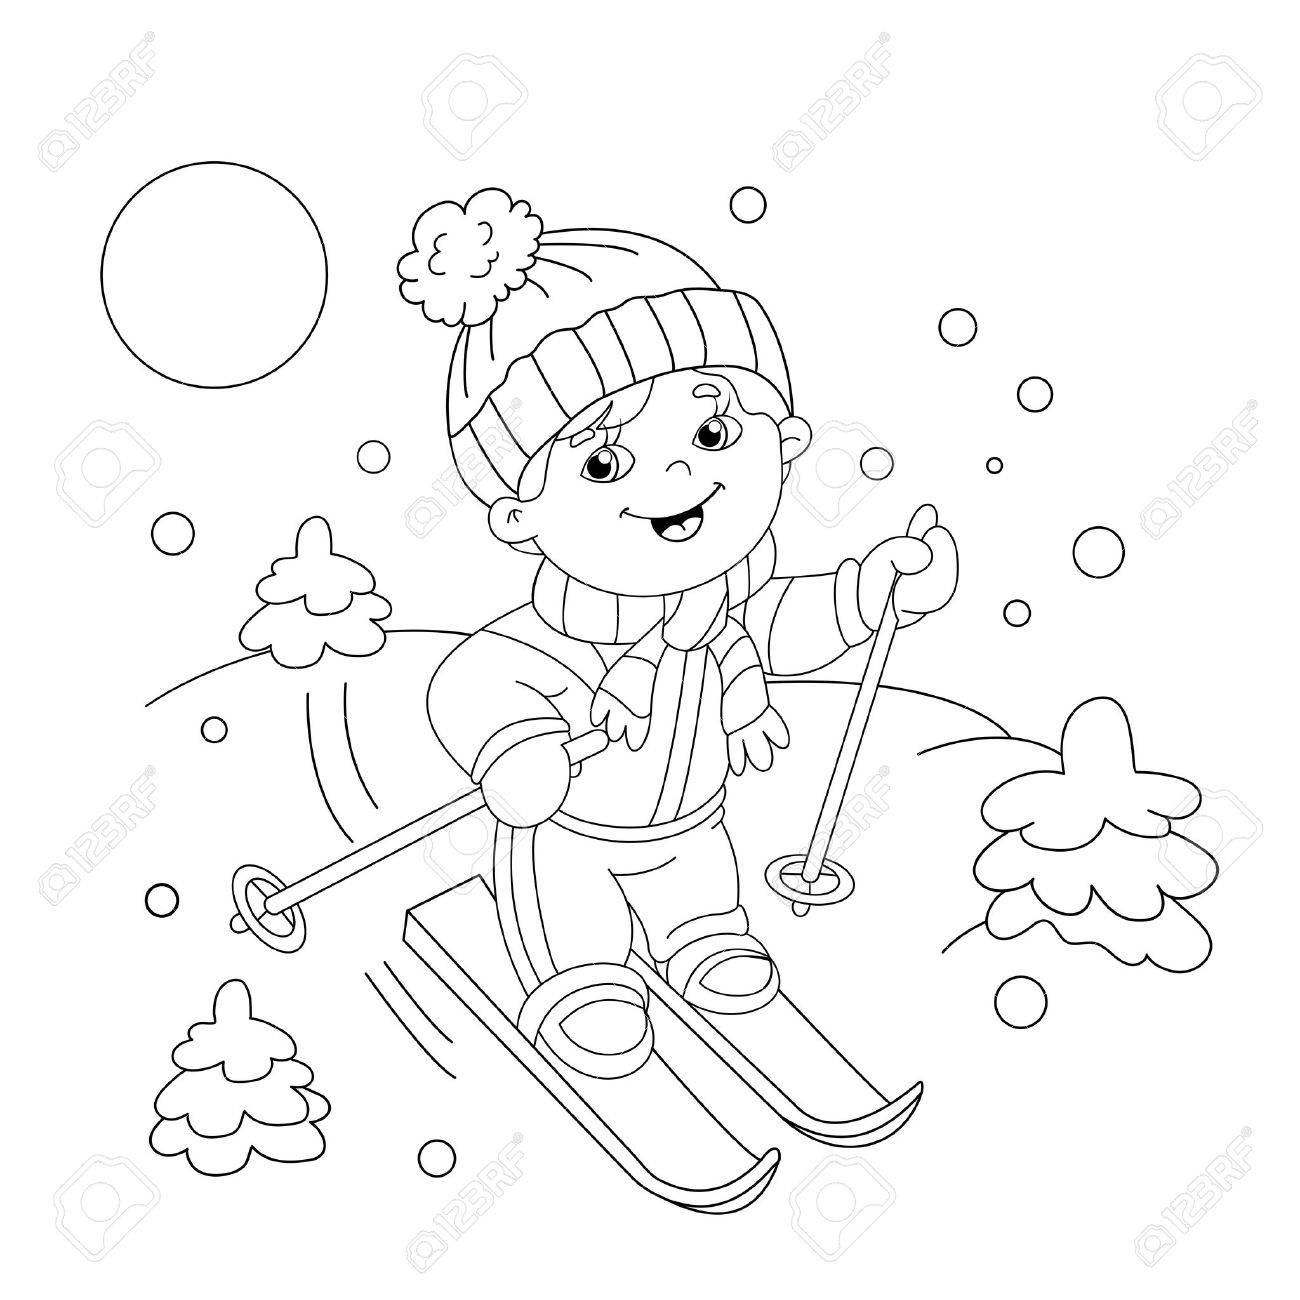 Coloring Page Outline Of Cartoon Boy Riding On Skis. Winter Sports ...